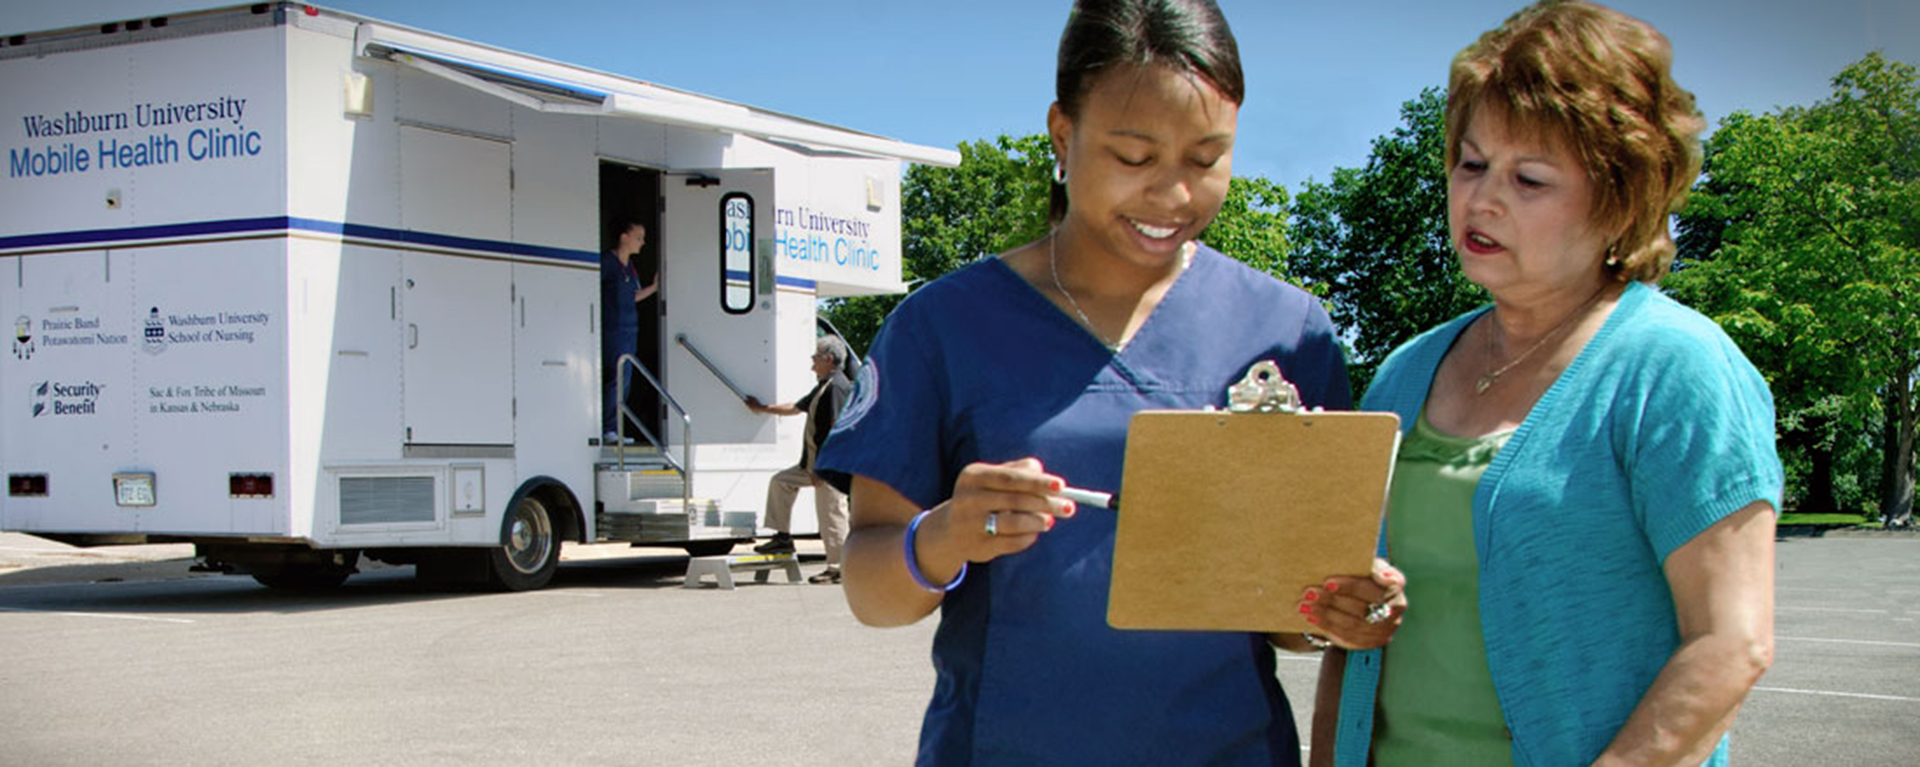 a nurse speaking with a woman in front of a mobile nursing vehicle